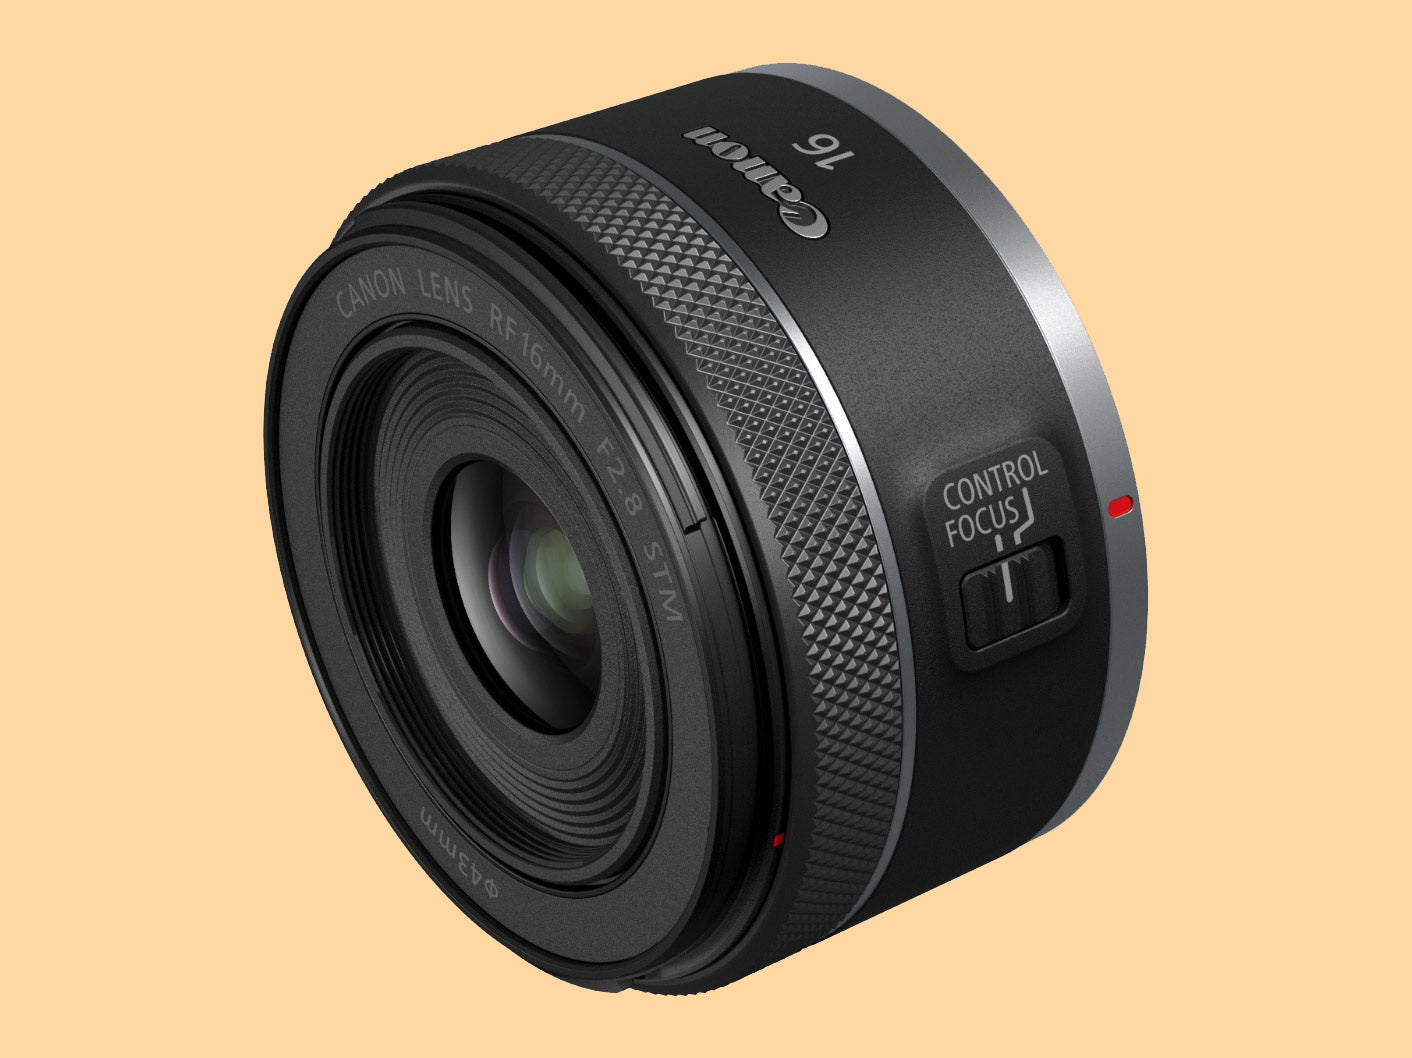 Canon launches new RF 16mm f/2.8 and RF 100-400mm f/5.6-8